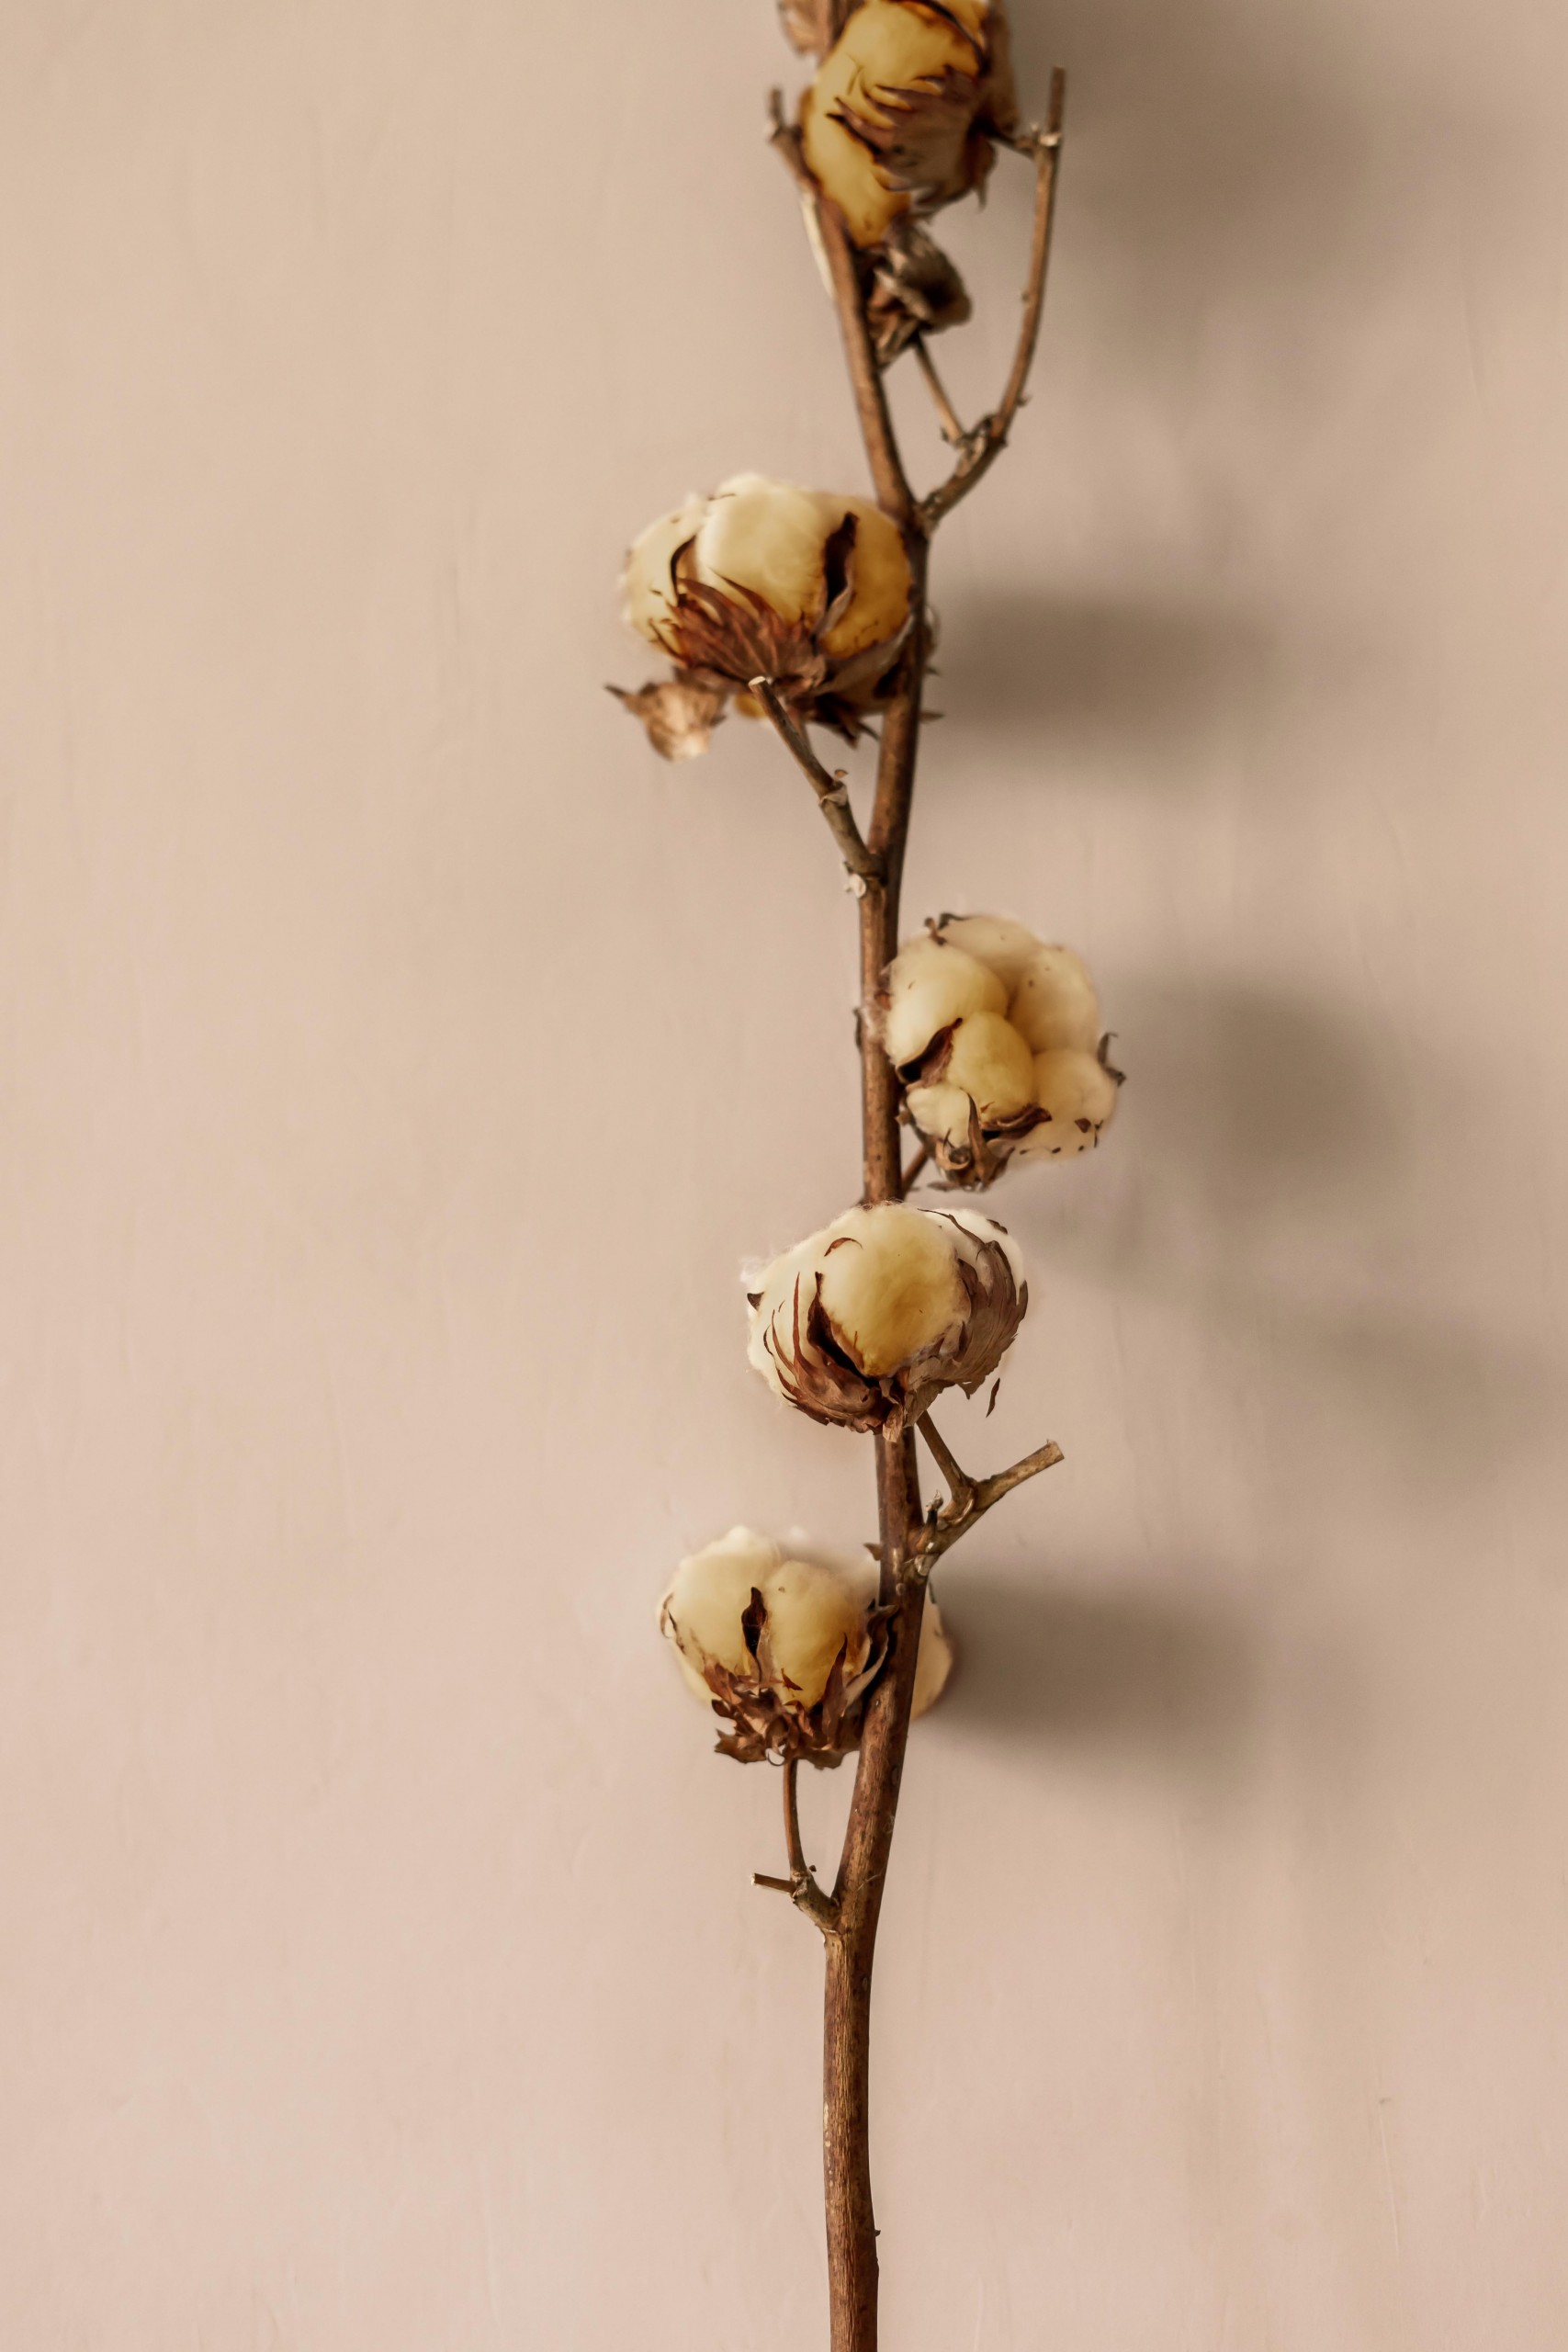 A Dried Cotton Plant On A Beige Background